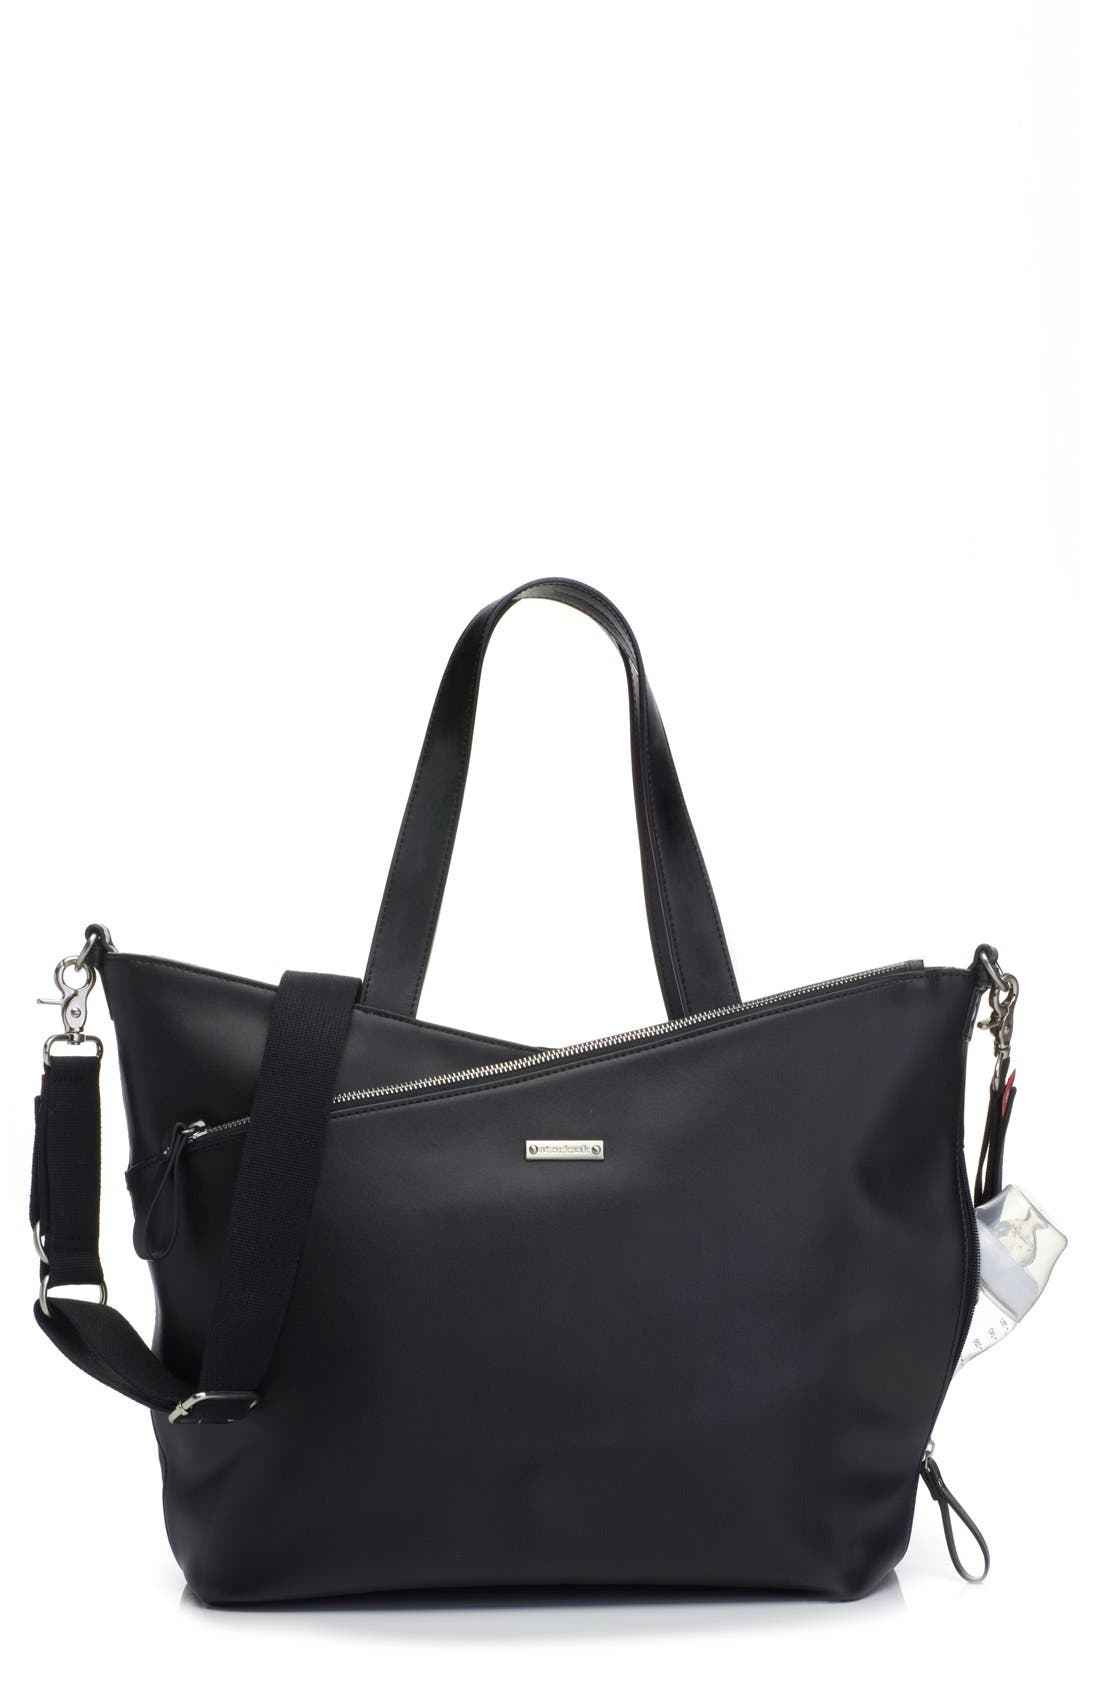 Storksak 'Lucinda' Diaper Bag Leather Tote